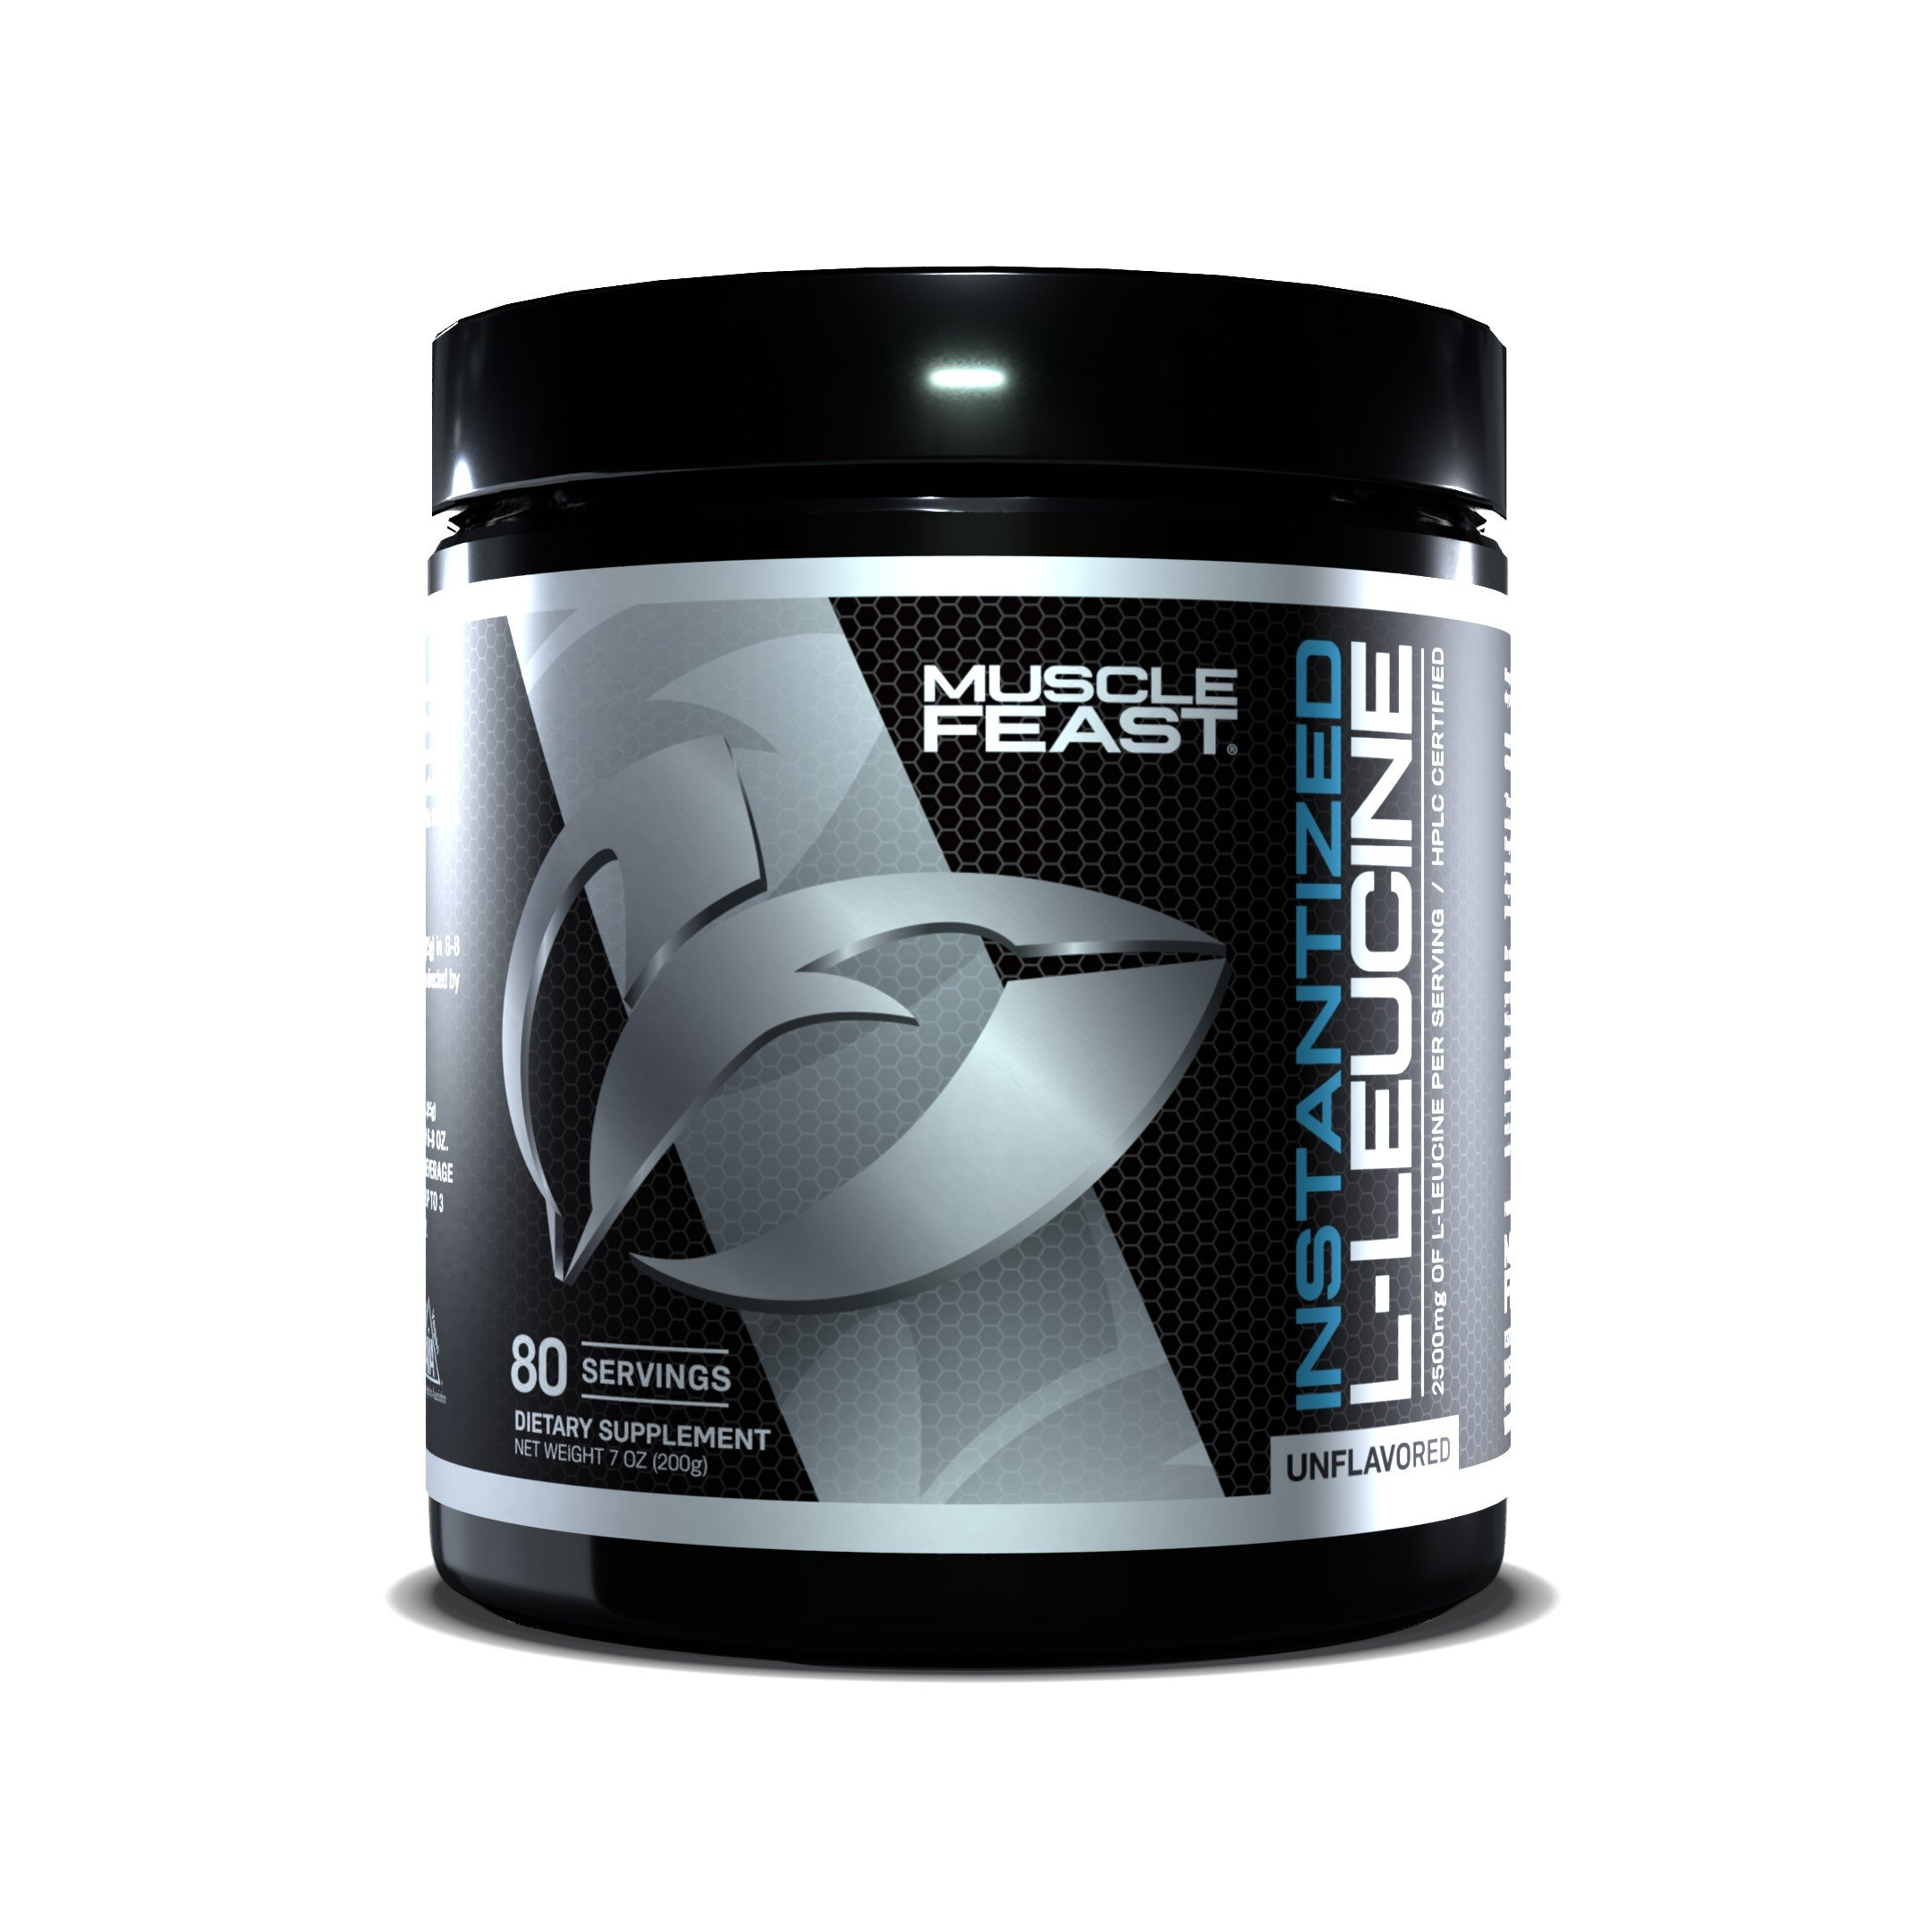 Muscle Feast Grass-Fed Whey Isolate